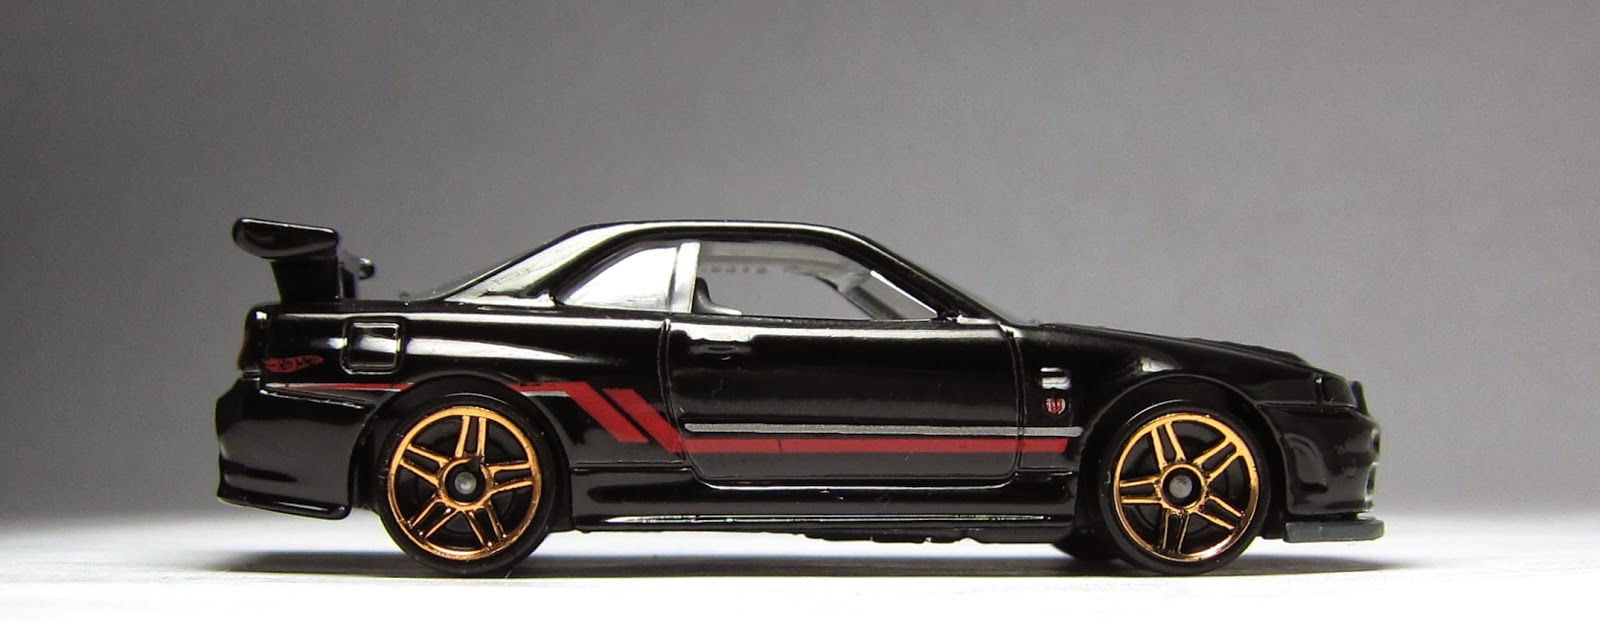 first look newly modified hot wheels nissan skyline gt r. Black Bedroom Furniture Sets. Home Design Ideas